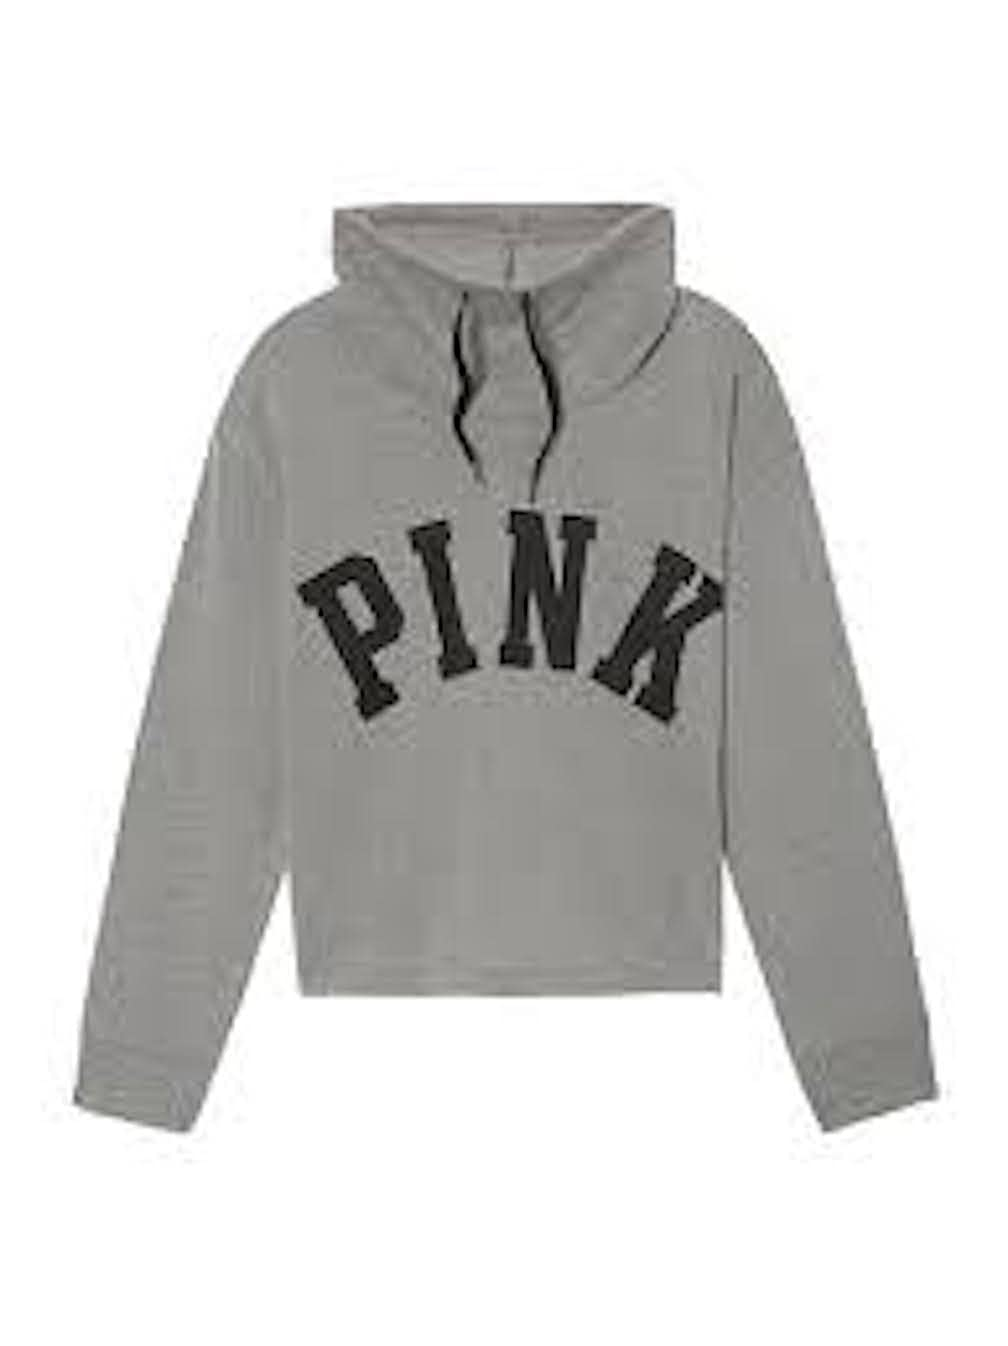 6cb5264e22306 Vs Pink Sweatshirts Amazon – Fertilizer Society of Tanzania